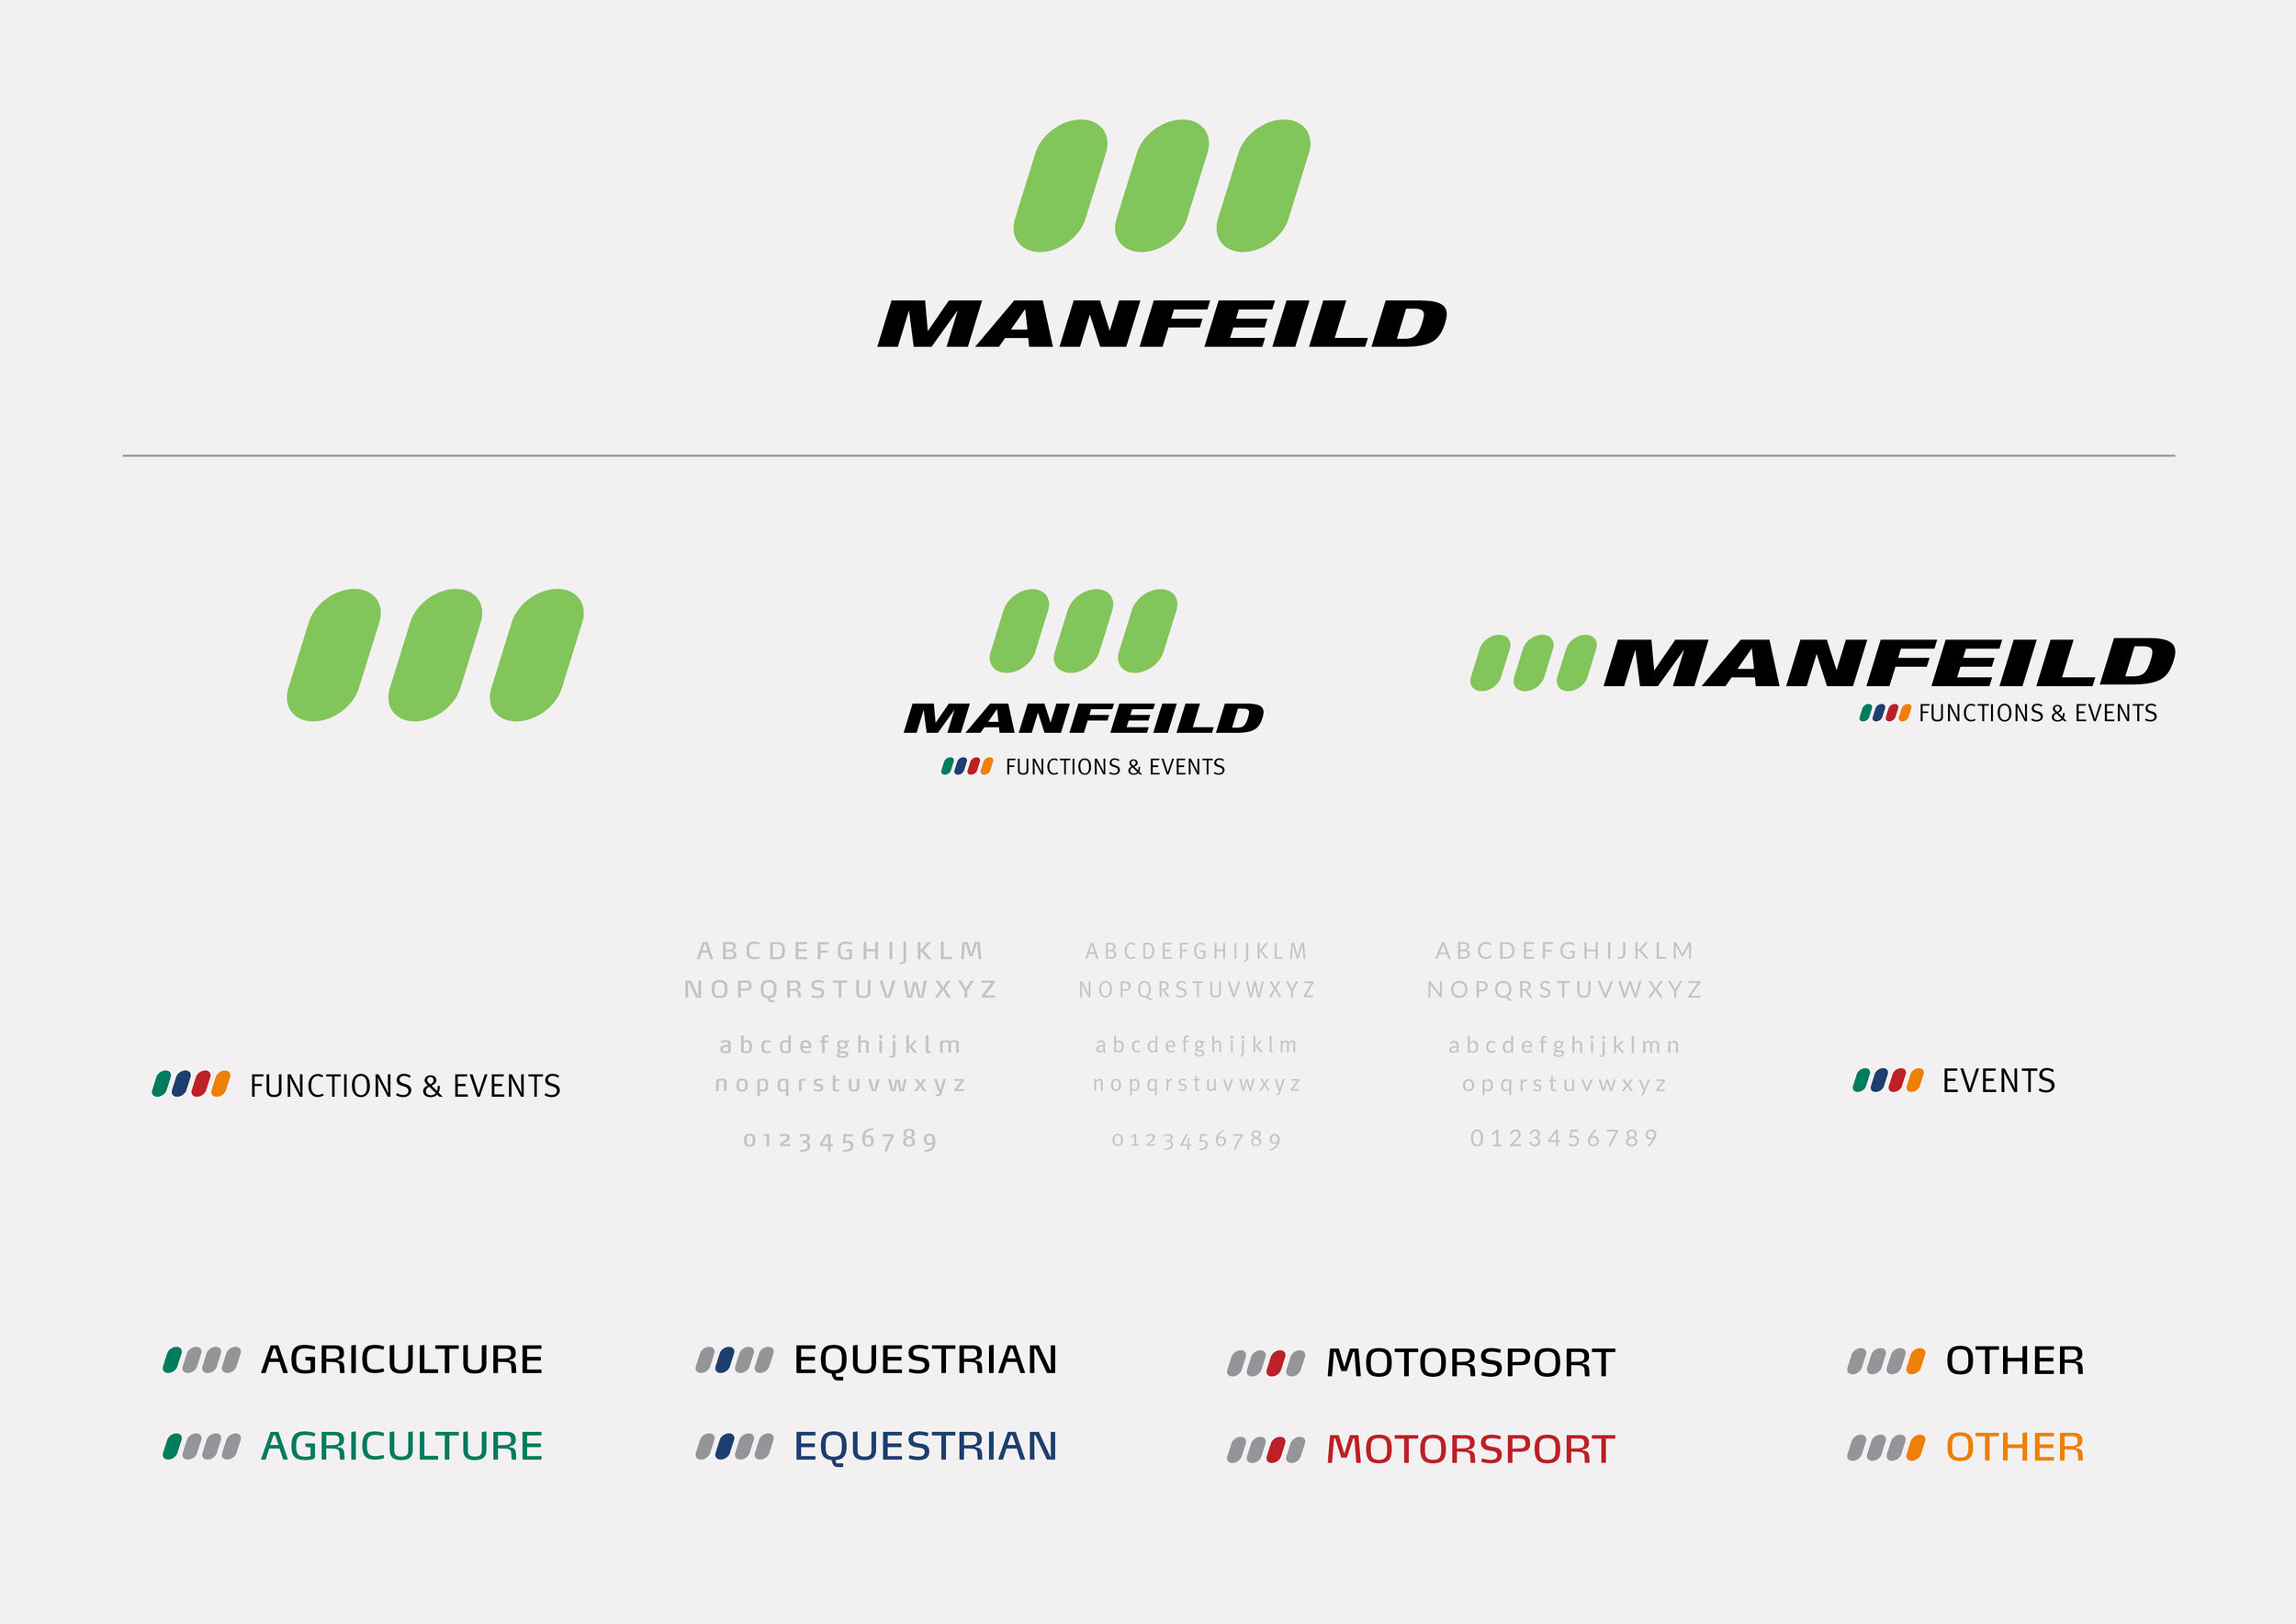 Manfeild Branding Elements.jpg